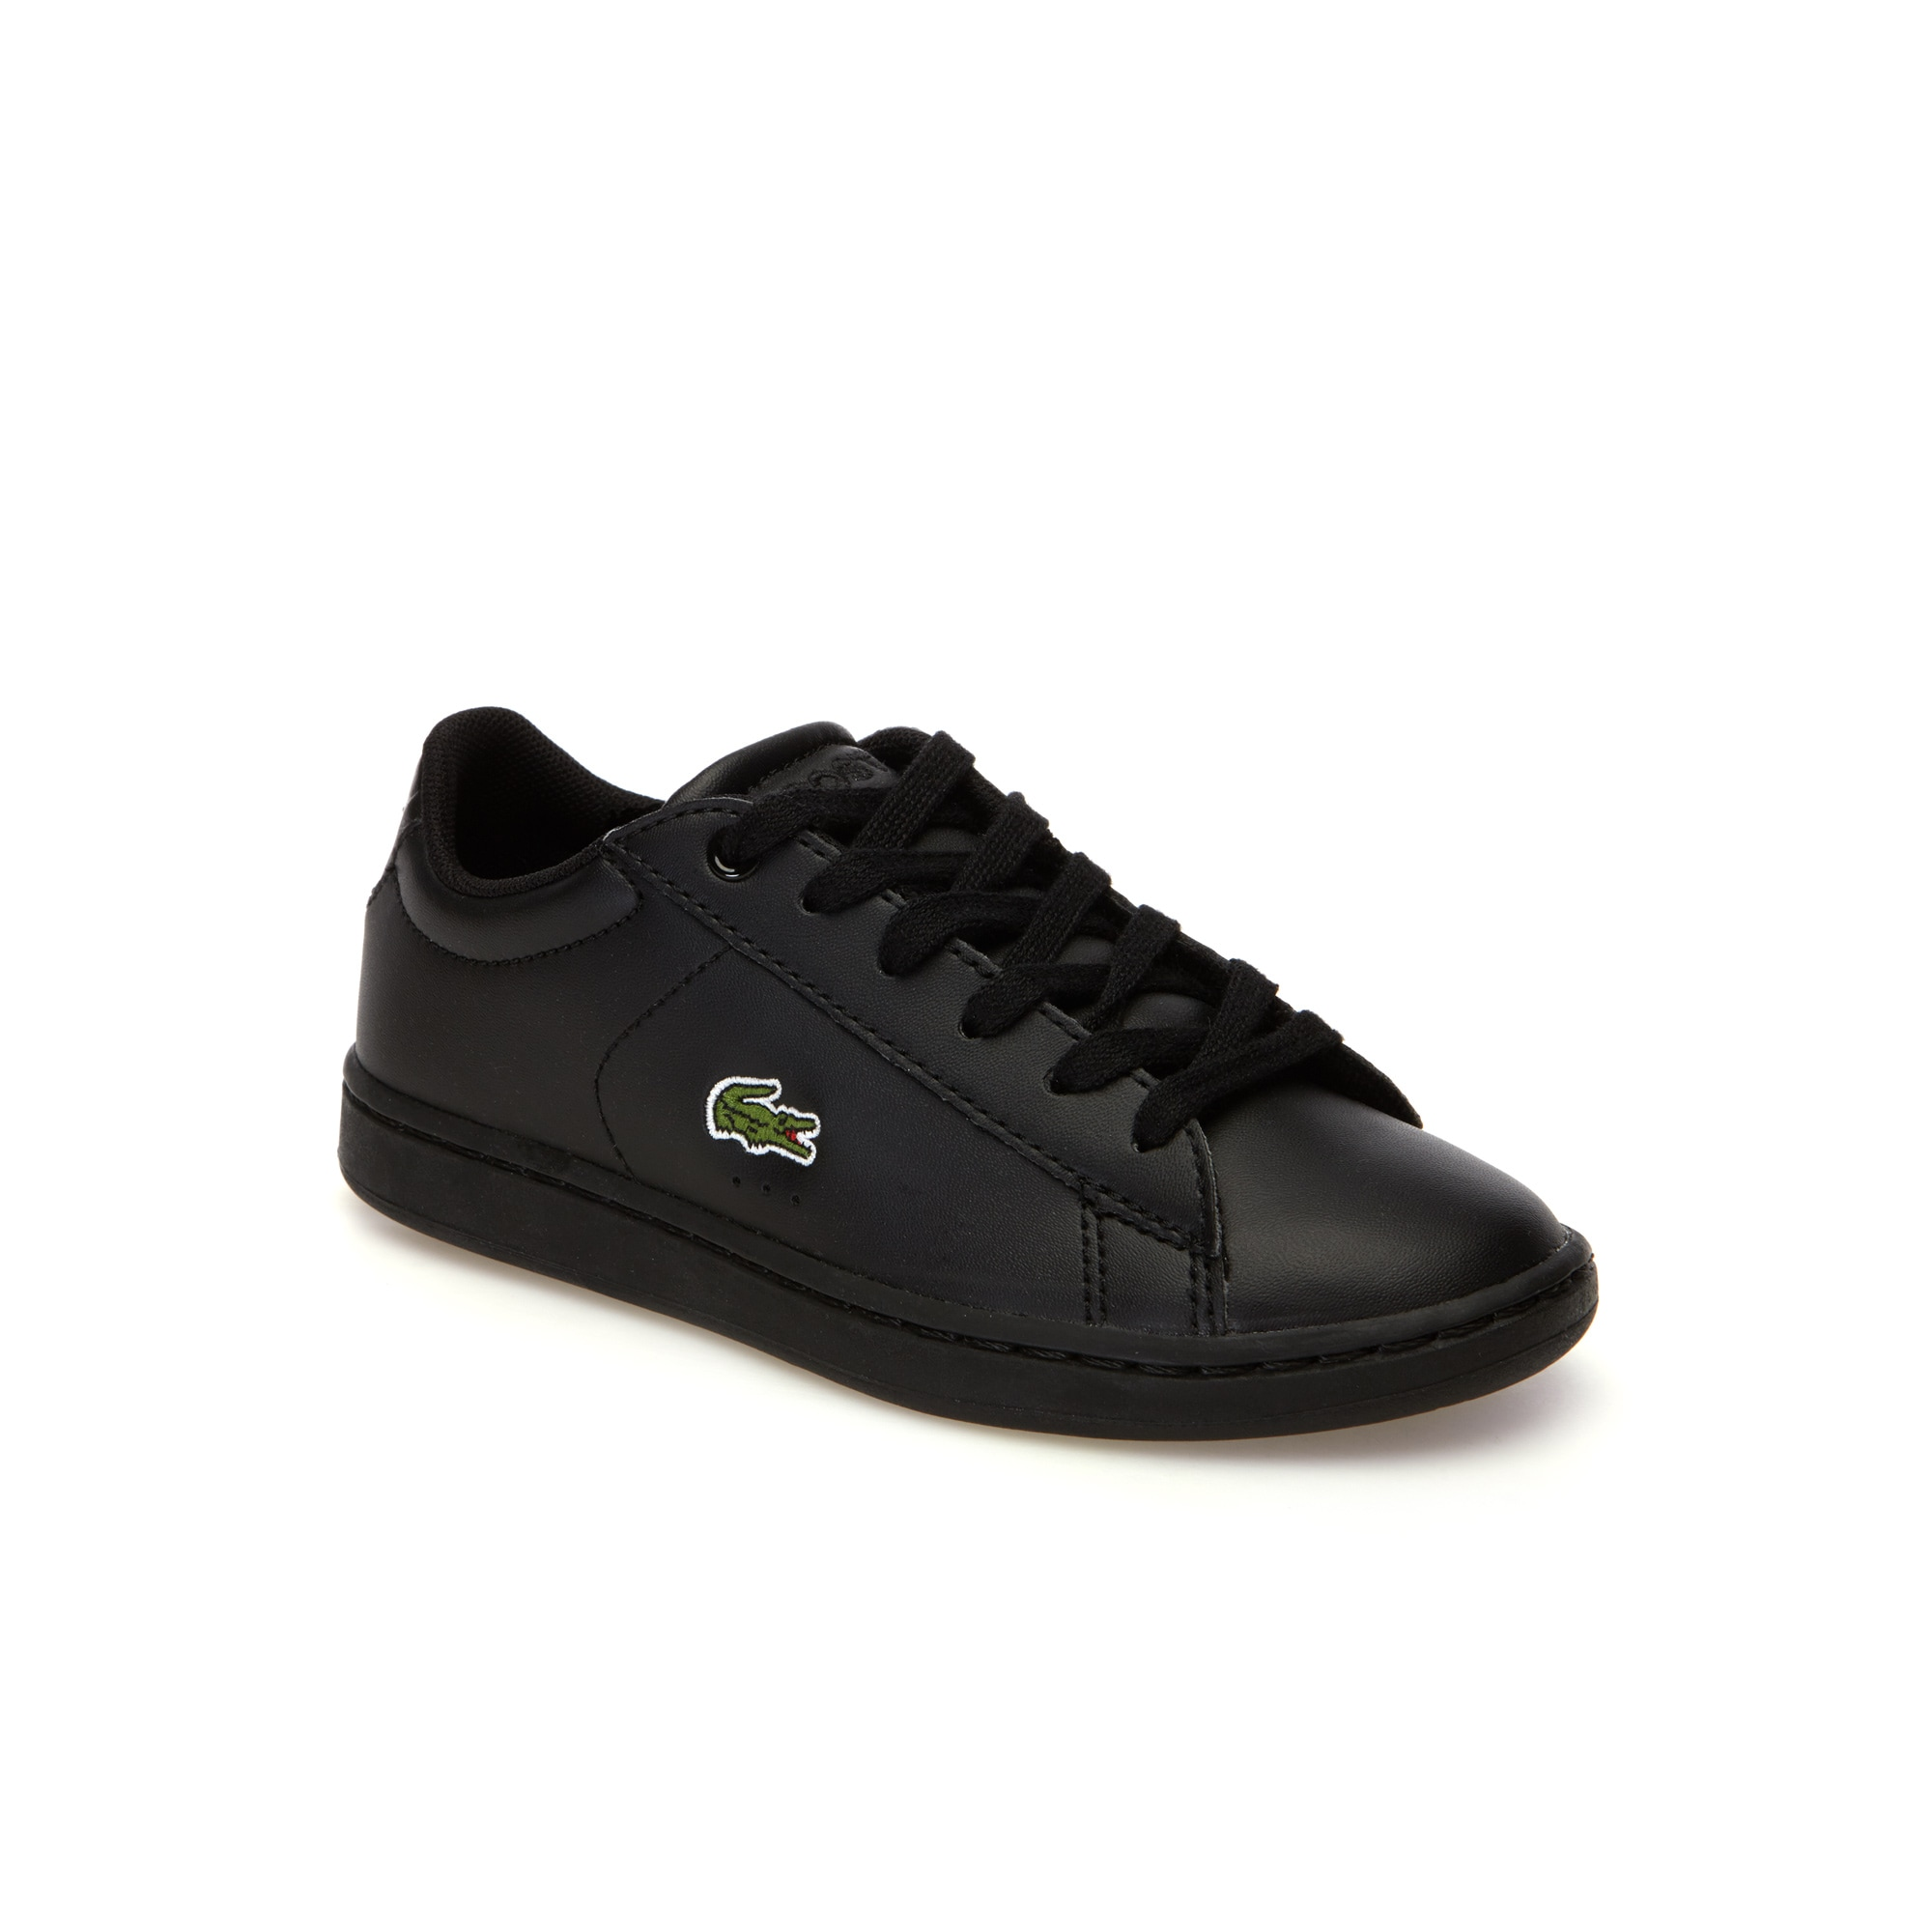 Sneakers Carnaby Evo bambini in similpelle